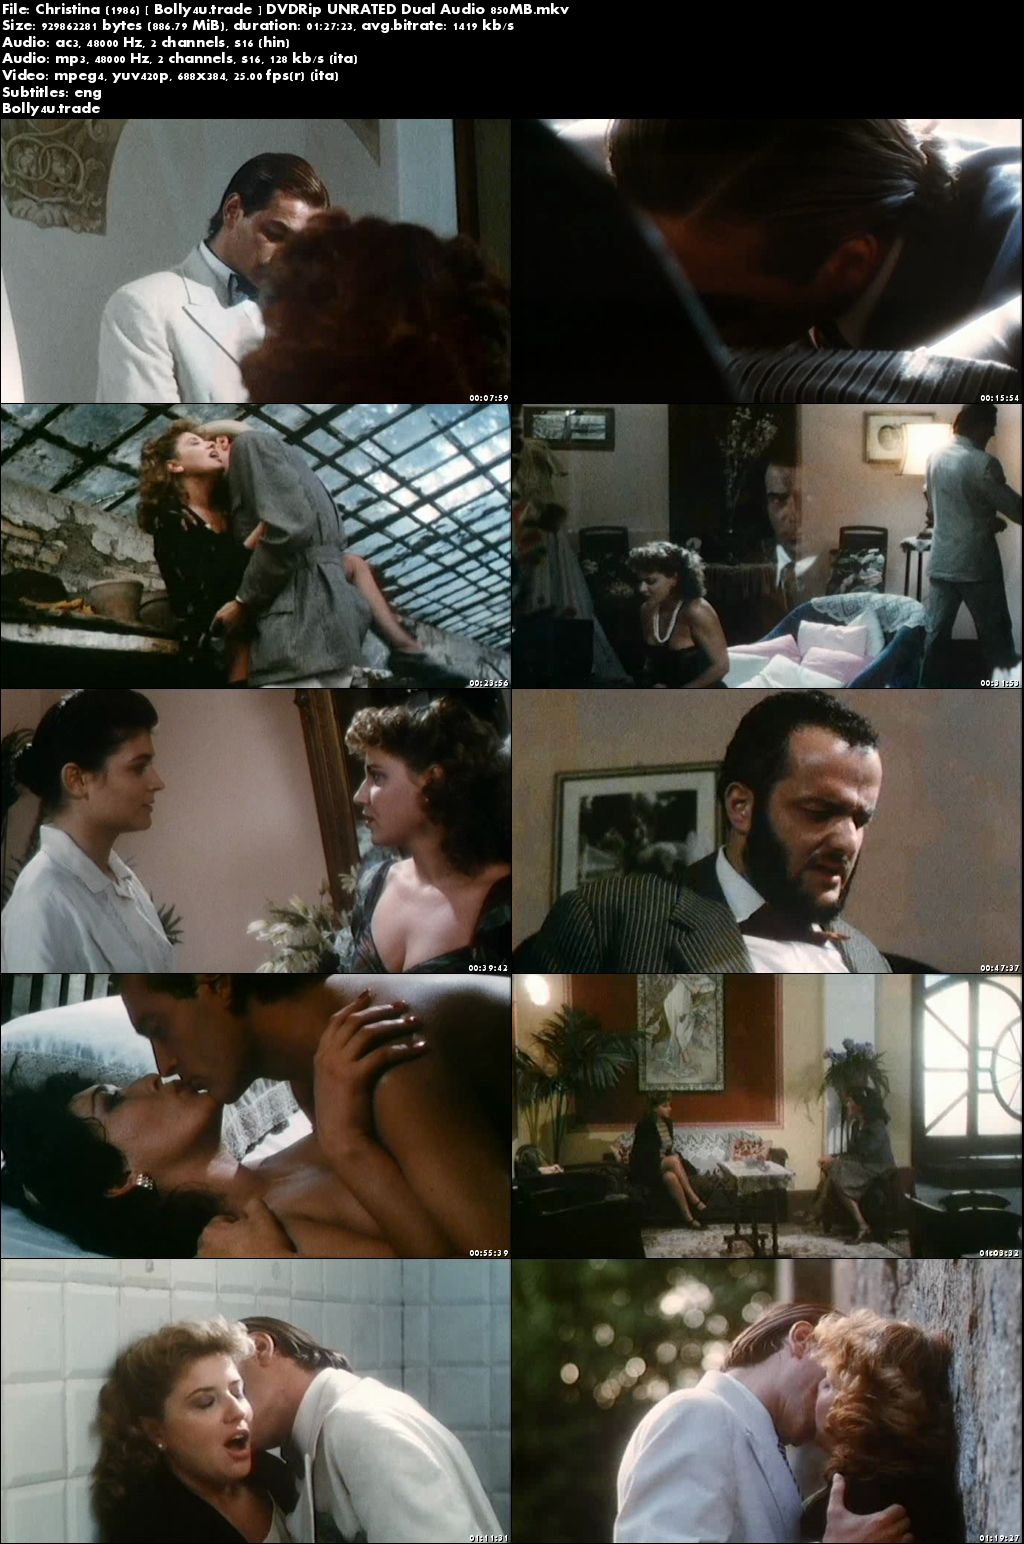 [18+] Christina 1986 DVDRip 850MB UNRATED Hindi Dual Audio x264 Download